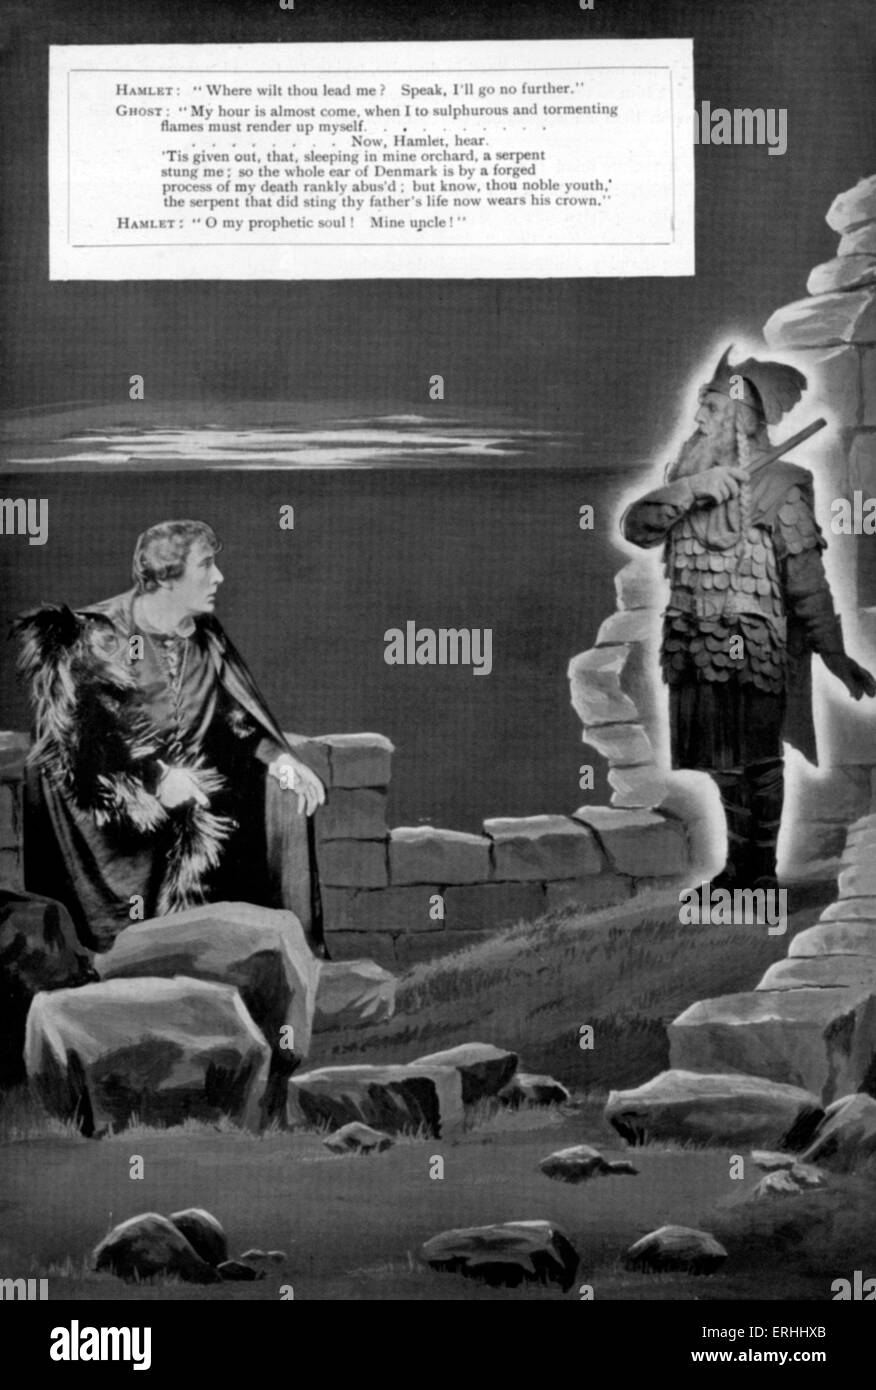 William Shakespeare 's play 'Hamlet' - Act I, scene 5: Hamlet (Henry Brodribb Irving) and the ghost of his father Stock Photo